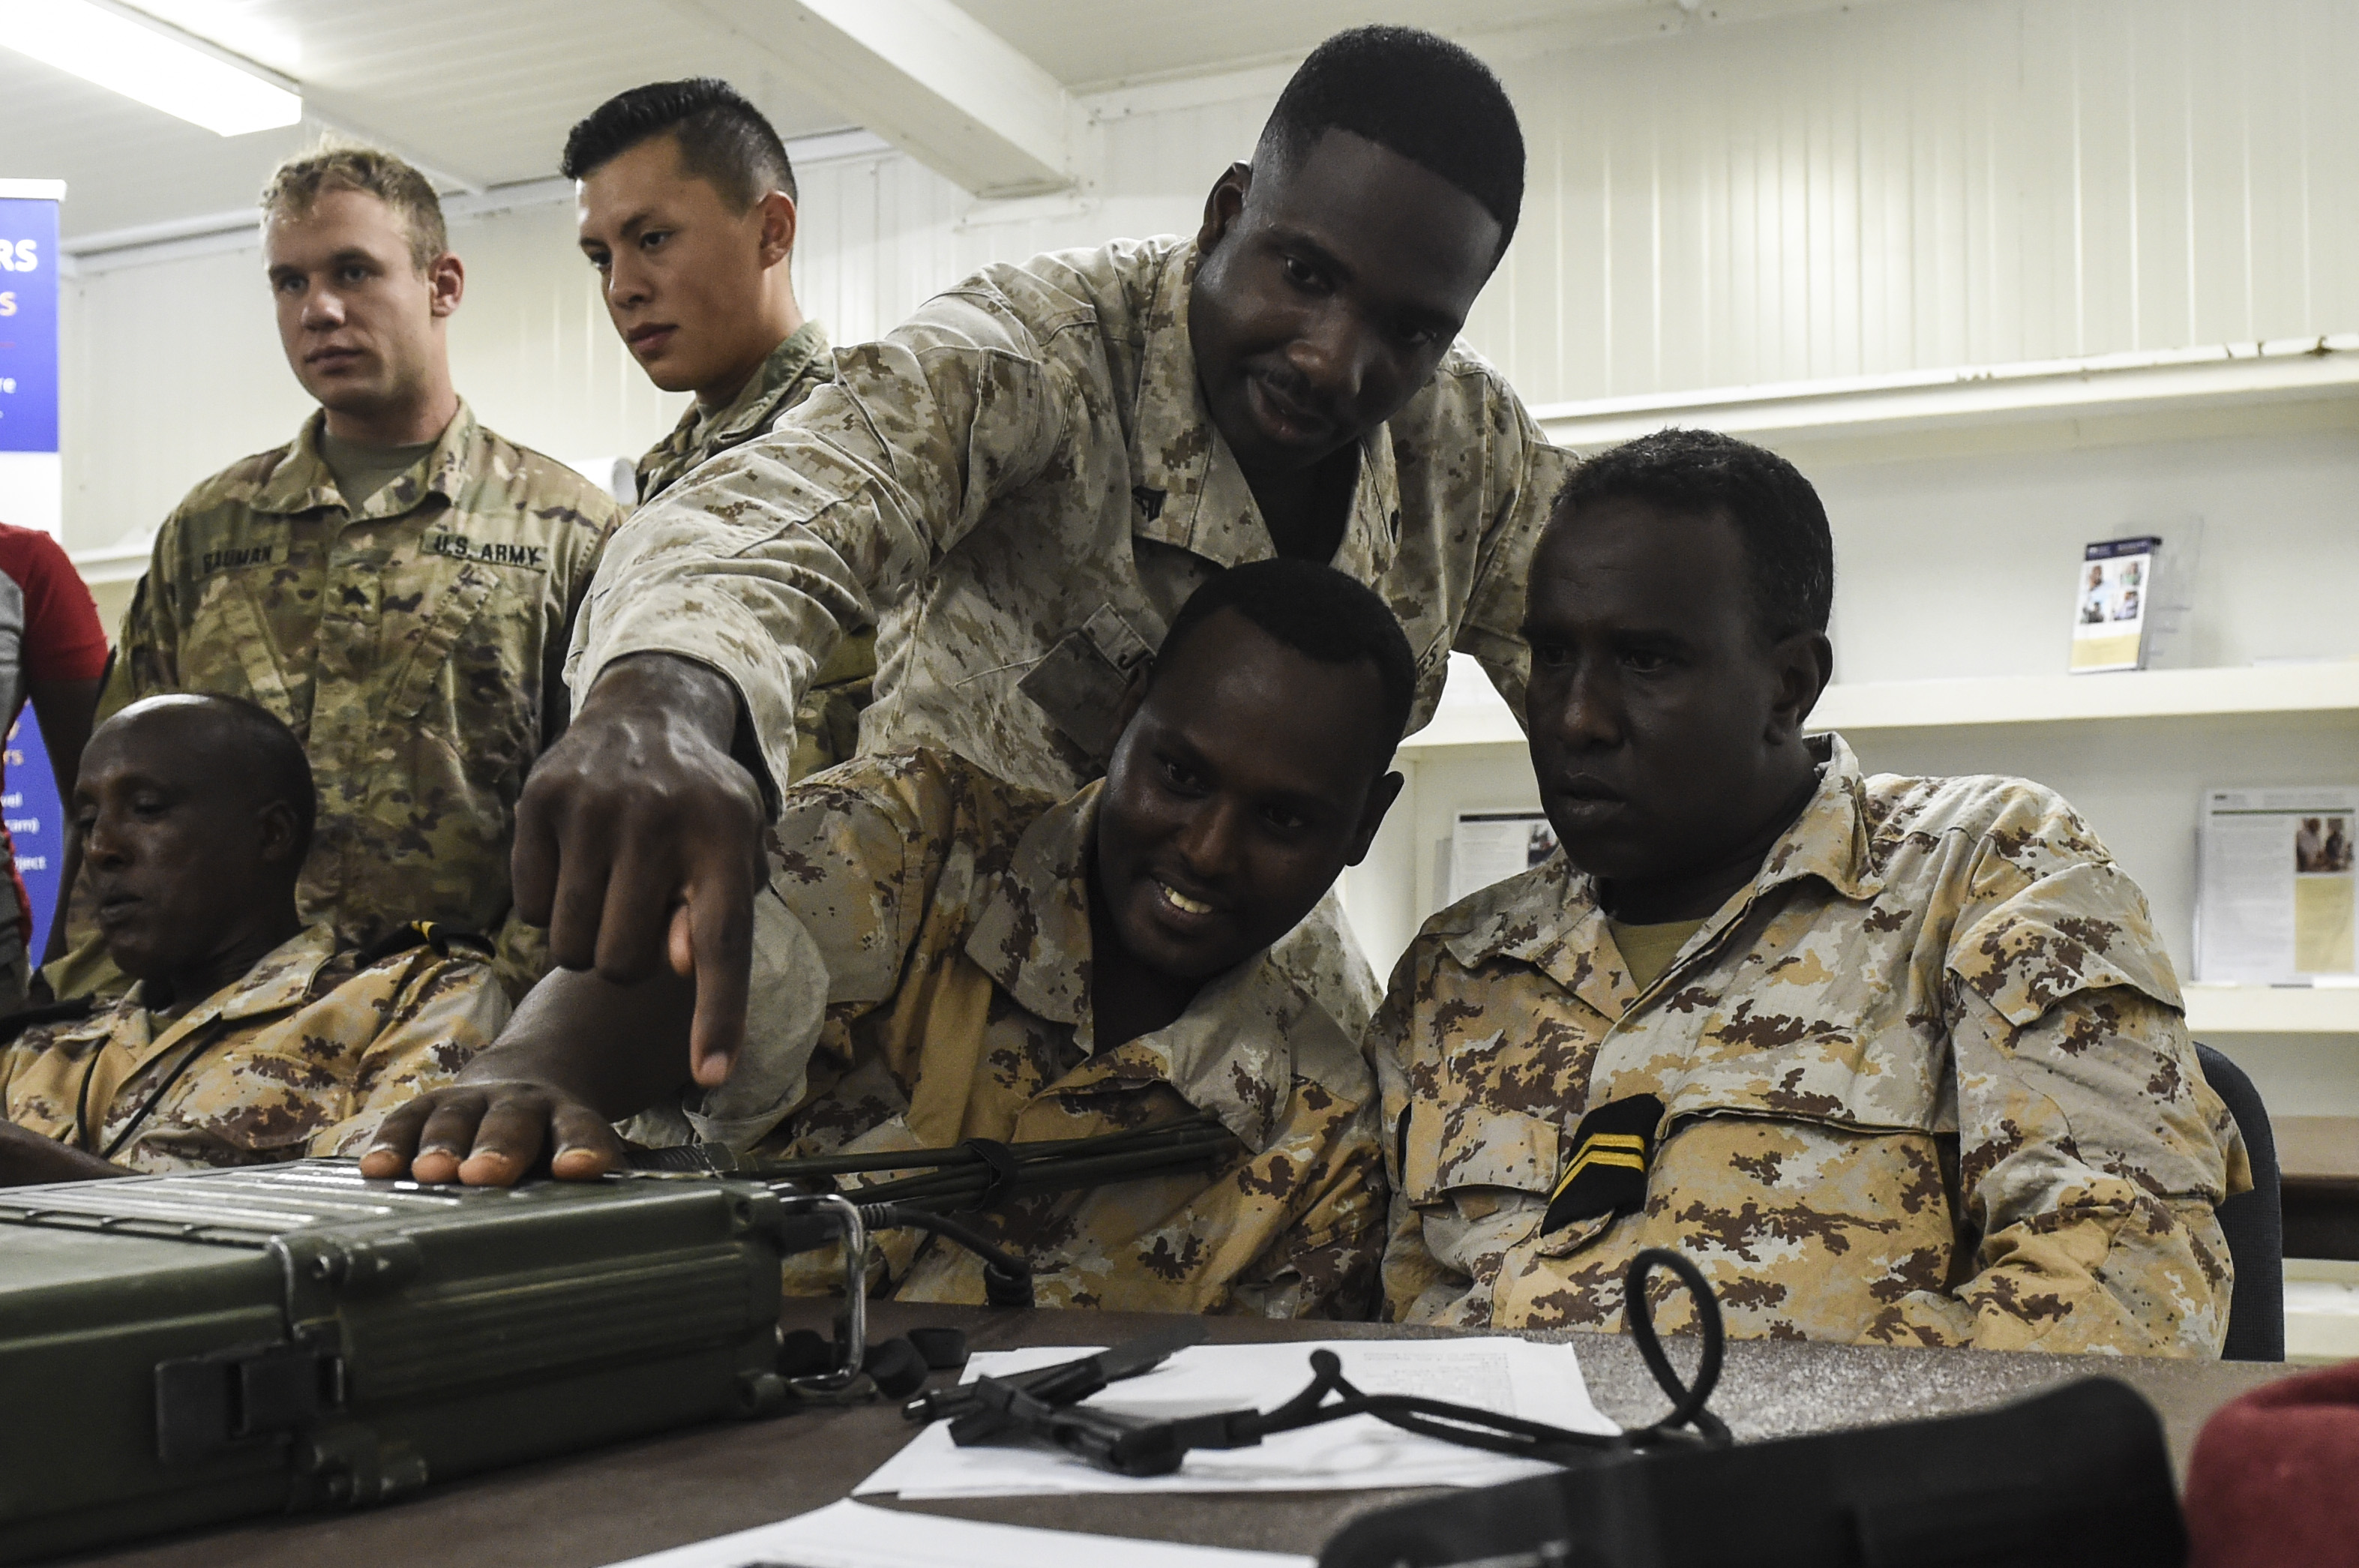 U.S. Marine Corps Cpl. Vickson Joseph, a field radio operator assigned to the Combined Joint Task Force-Horn of Africa communications directorate, demonstrates the proper use of a Harris radio during a three-day best practices sharing session with Djibouti Armed Forces at Camp Lemonnier, Oct. 3, 2017. With the aid of slide show presentations, multiple practical exercises and hands-on demonstrations, the tactical communications personnel showcased how thy use the radios and exchanged information about standard operating procedures with FAD personnel. (U.S. Air Force photo by Staff Sgt. Eboni Prince)